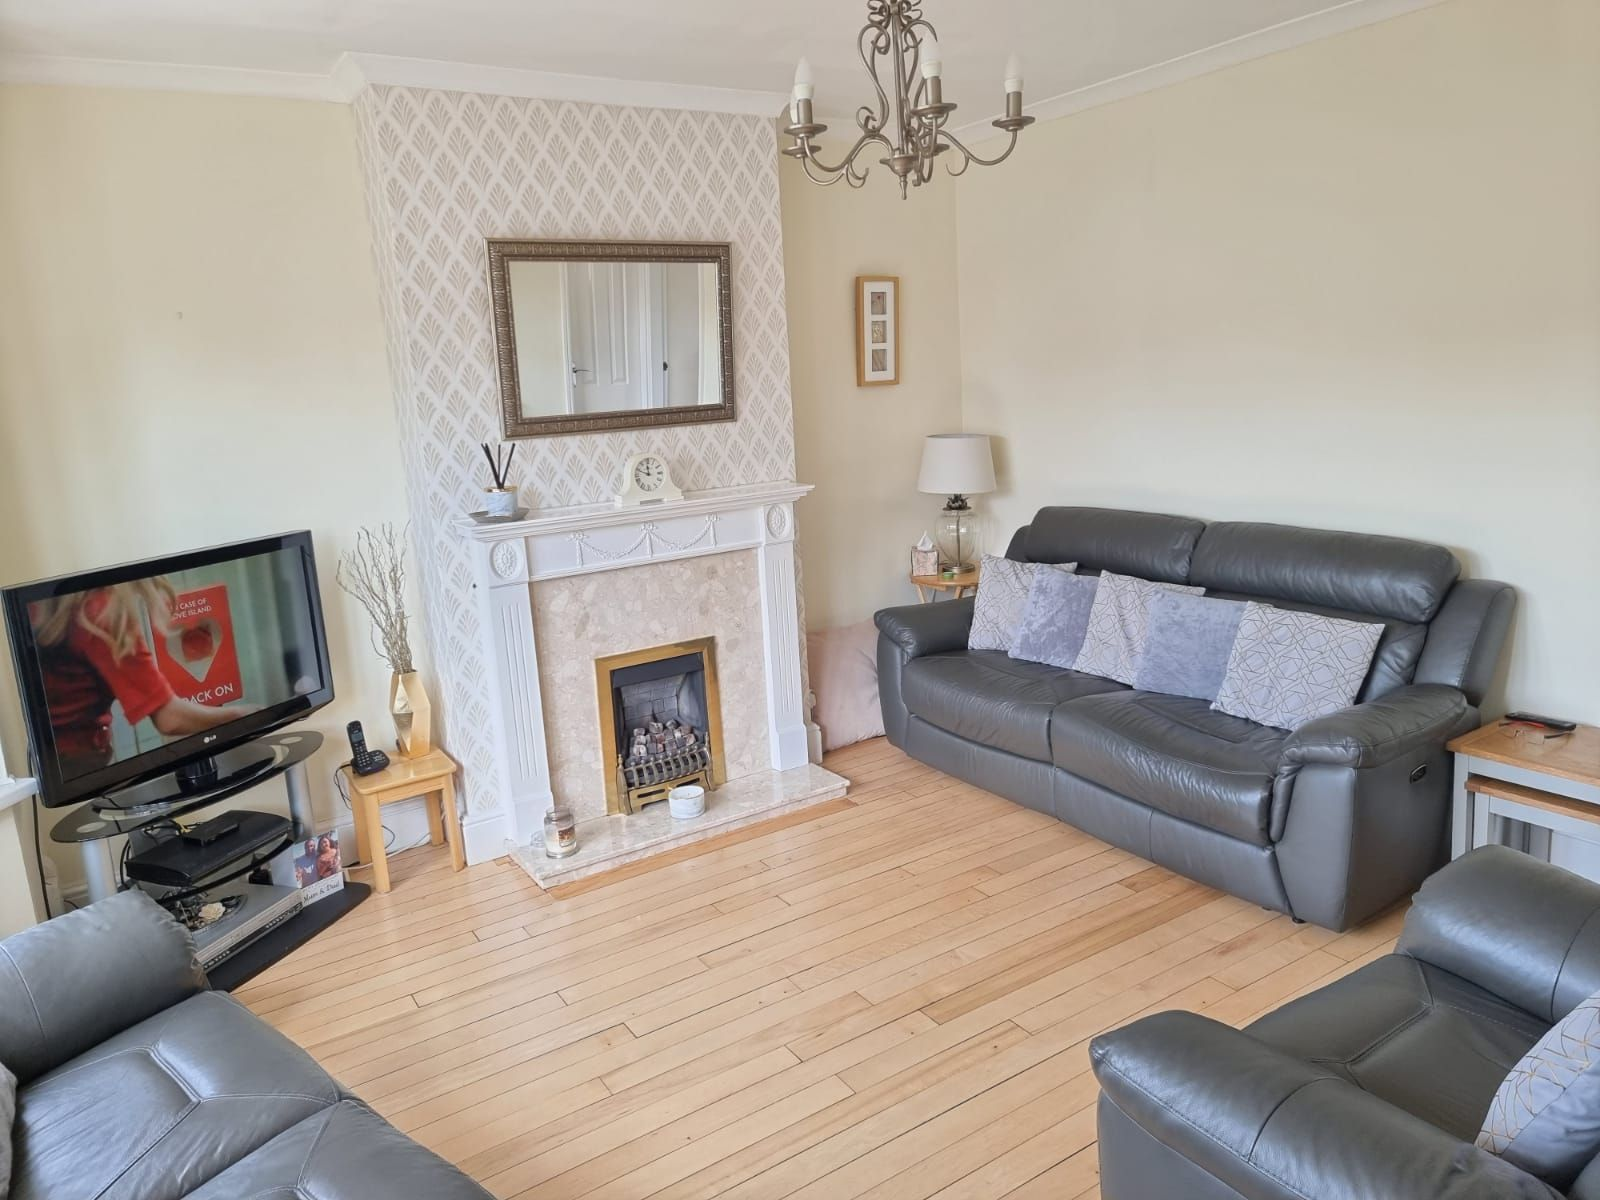 3 bedroom semi-detached house SSTC in Leicester - Photograph 2.